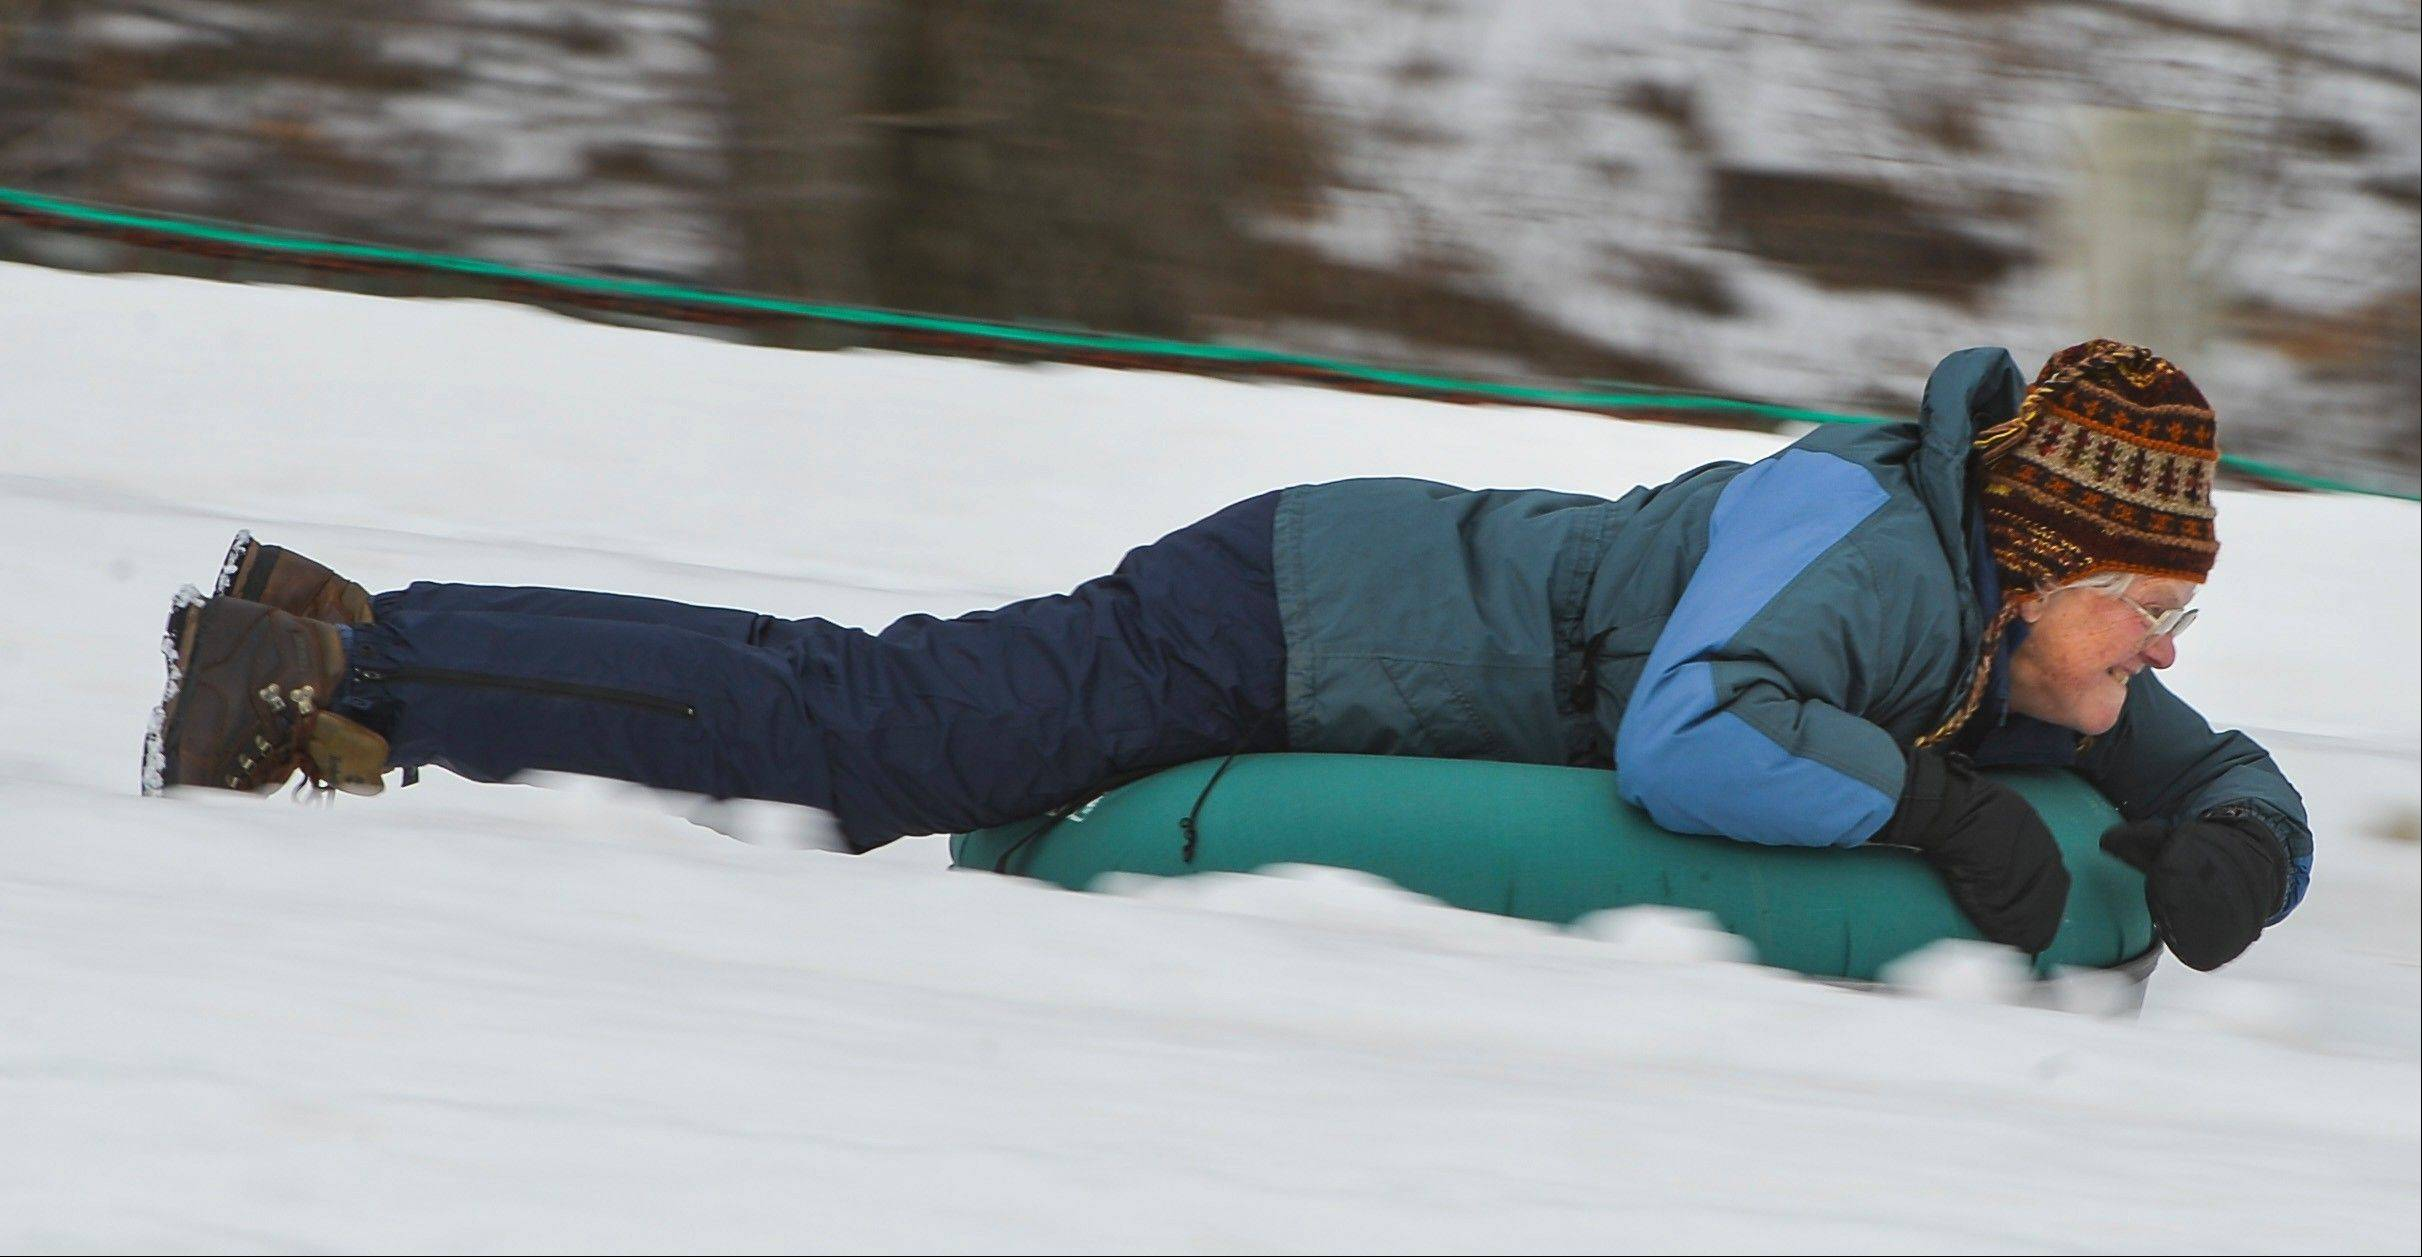 Gail Flanagan slides down a hill on a snow tube on Jan. 31, at Whitetail Resort in Mercersburg, Pa. She and her fellow retirees from Gaithersburg, Md. took a day trip to Whitetail.